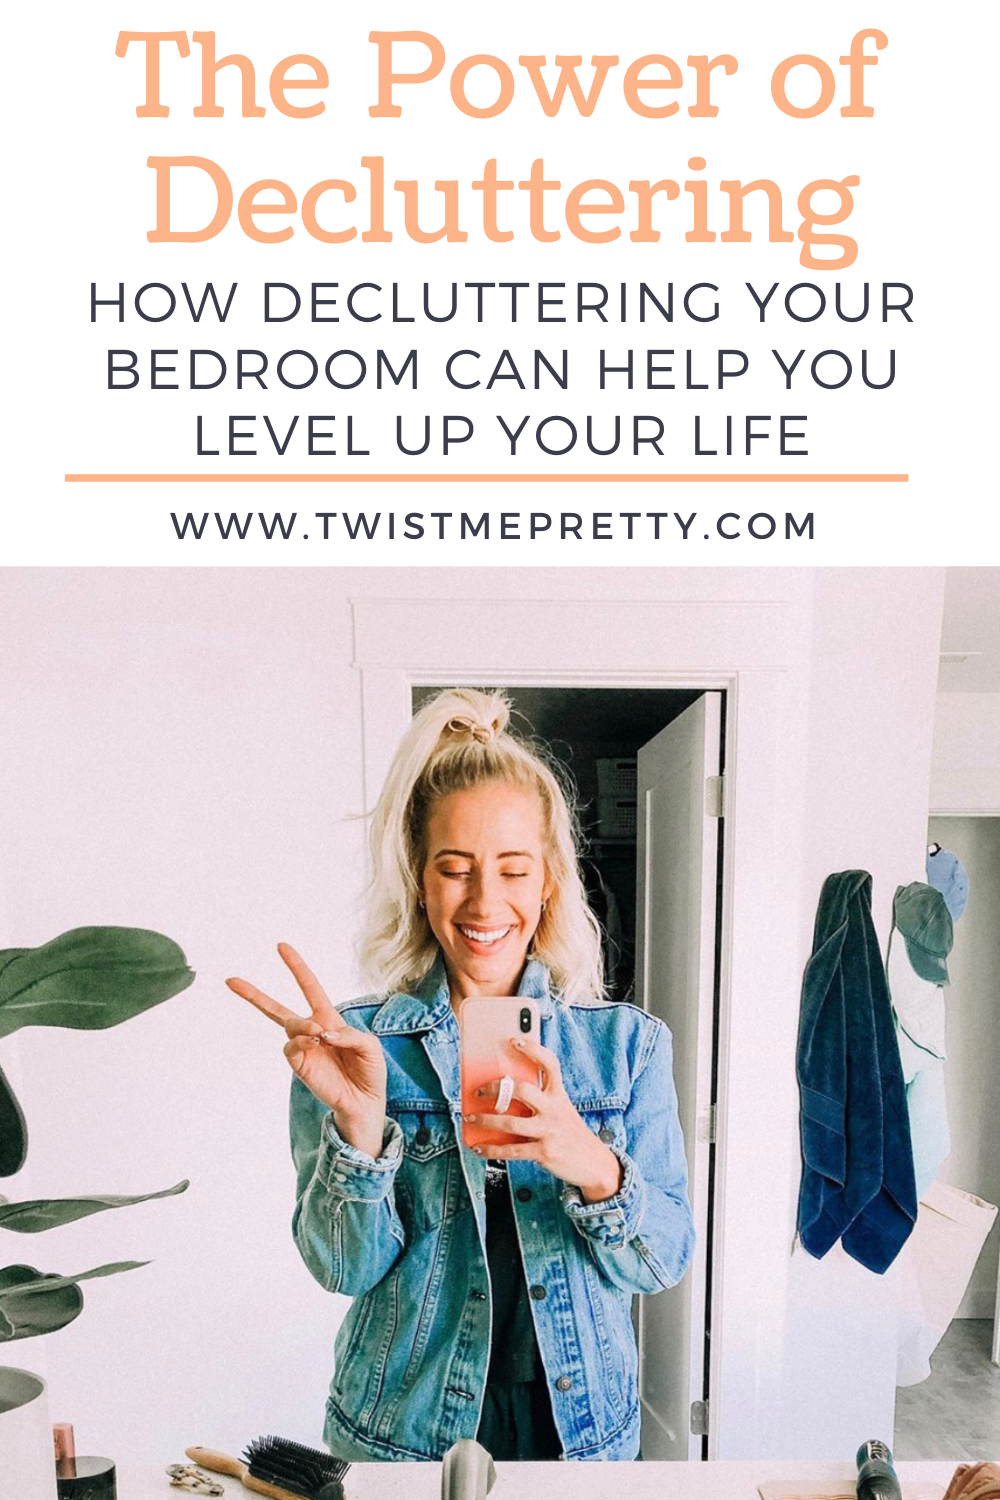 The power of decluttering. How decluttering your bedroom can help you level up your life. www.twistmepretty.com